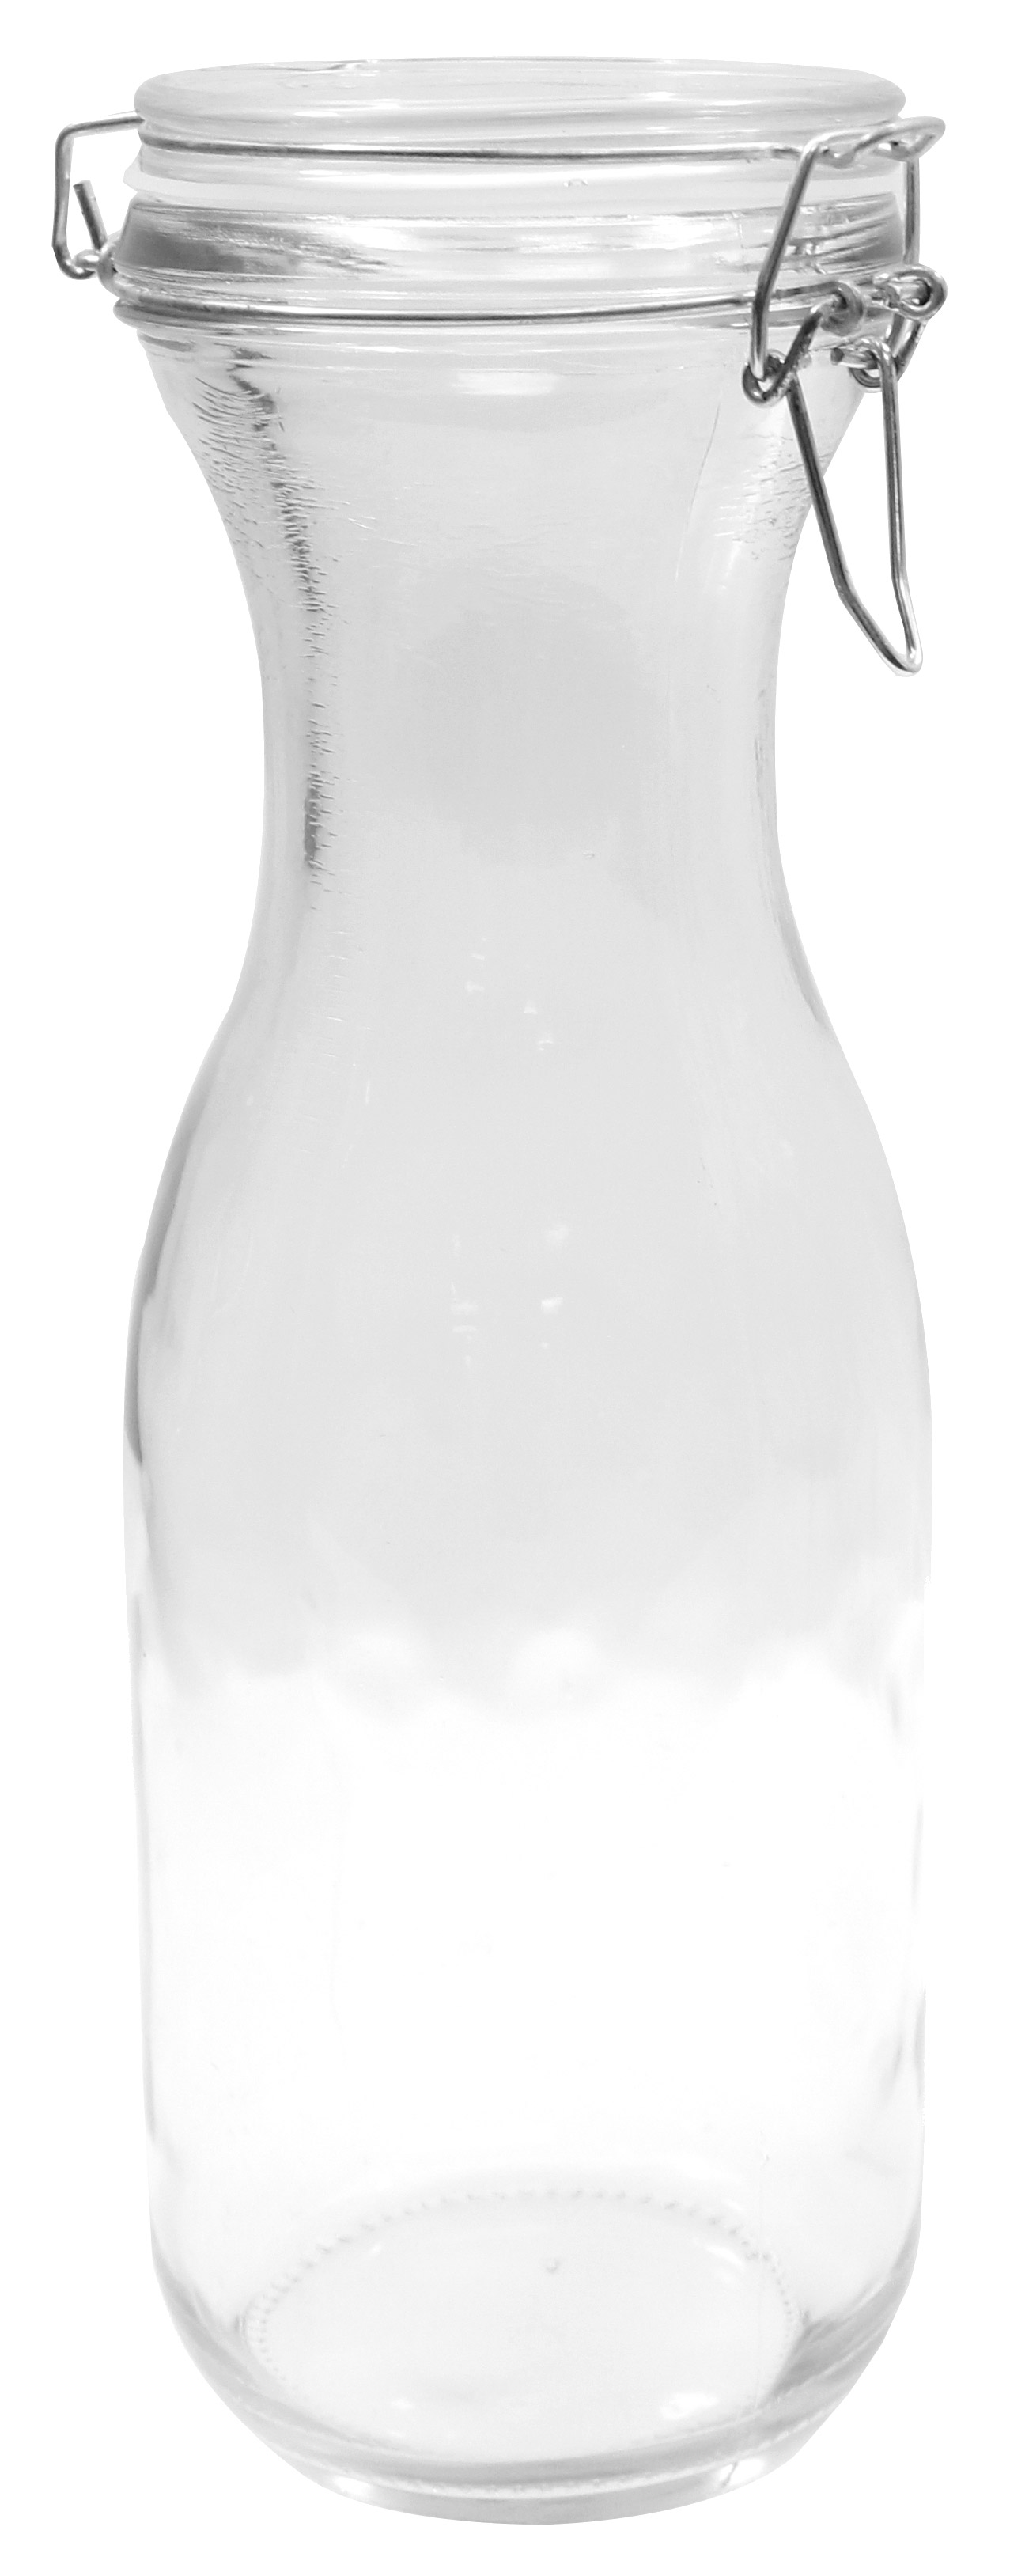 TableCraft Products RGC34 decanter carafe